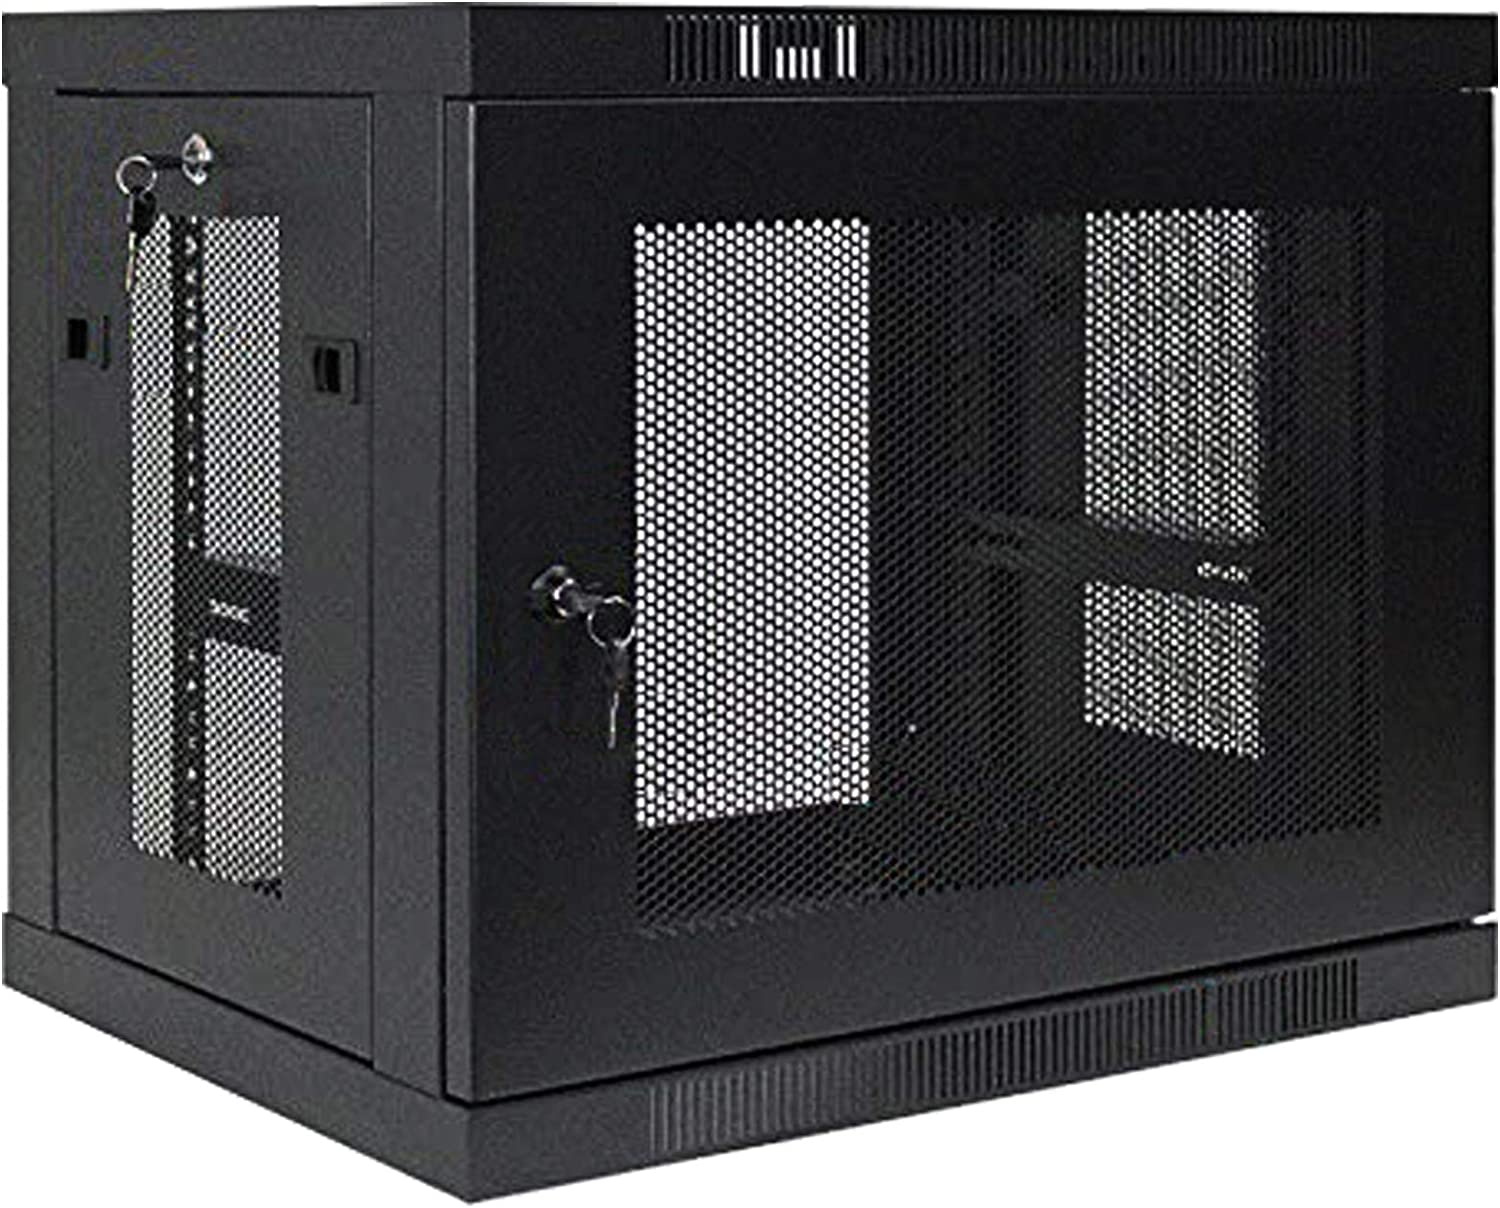 1 Set of 9U Network Server Data Cabinet Black Rack Perforated Door Lock,Apply to Network Wiring Room,Computer Room,Data Room,Control Center,Home,Office,etc.